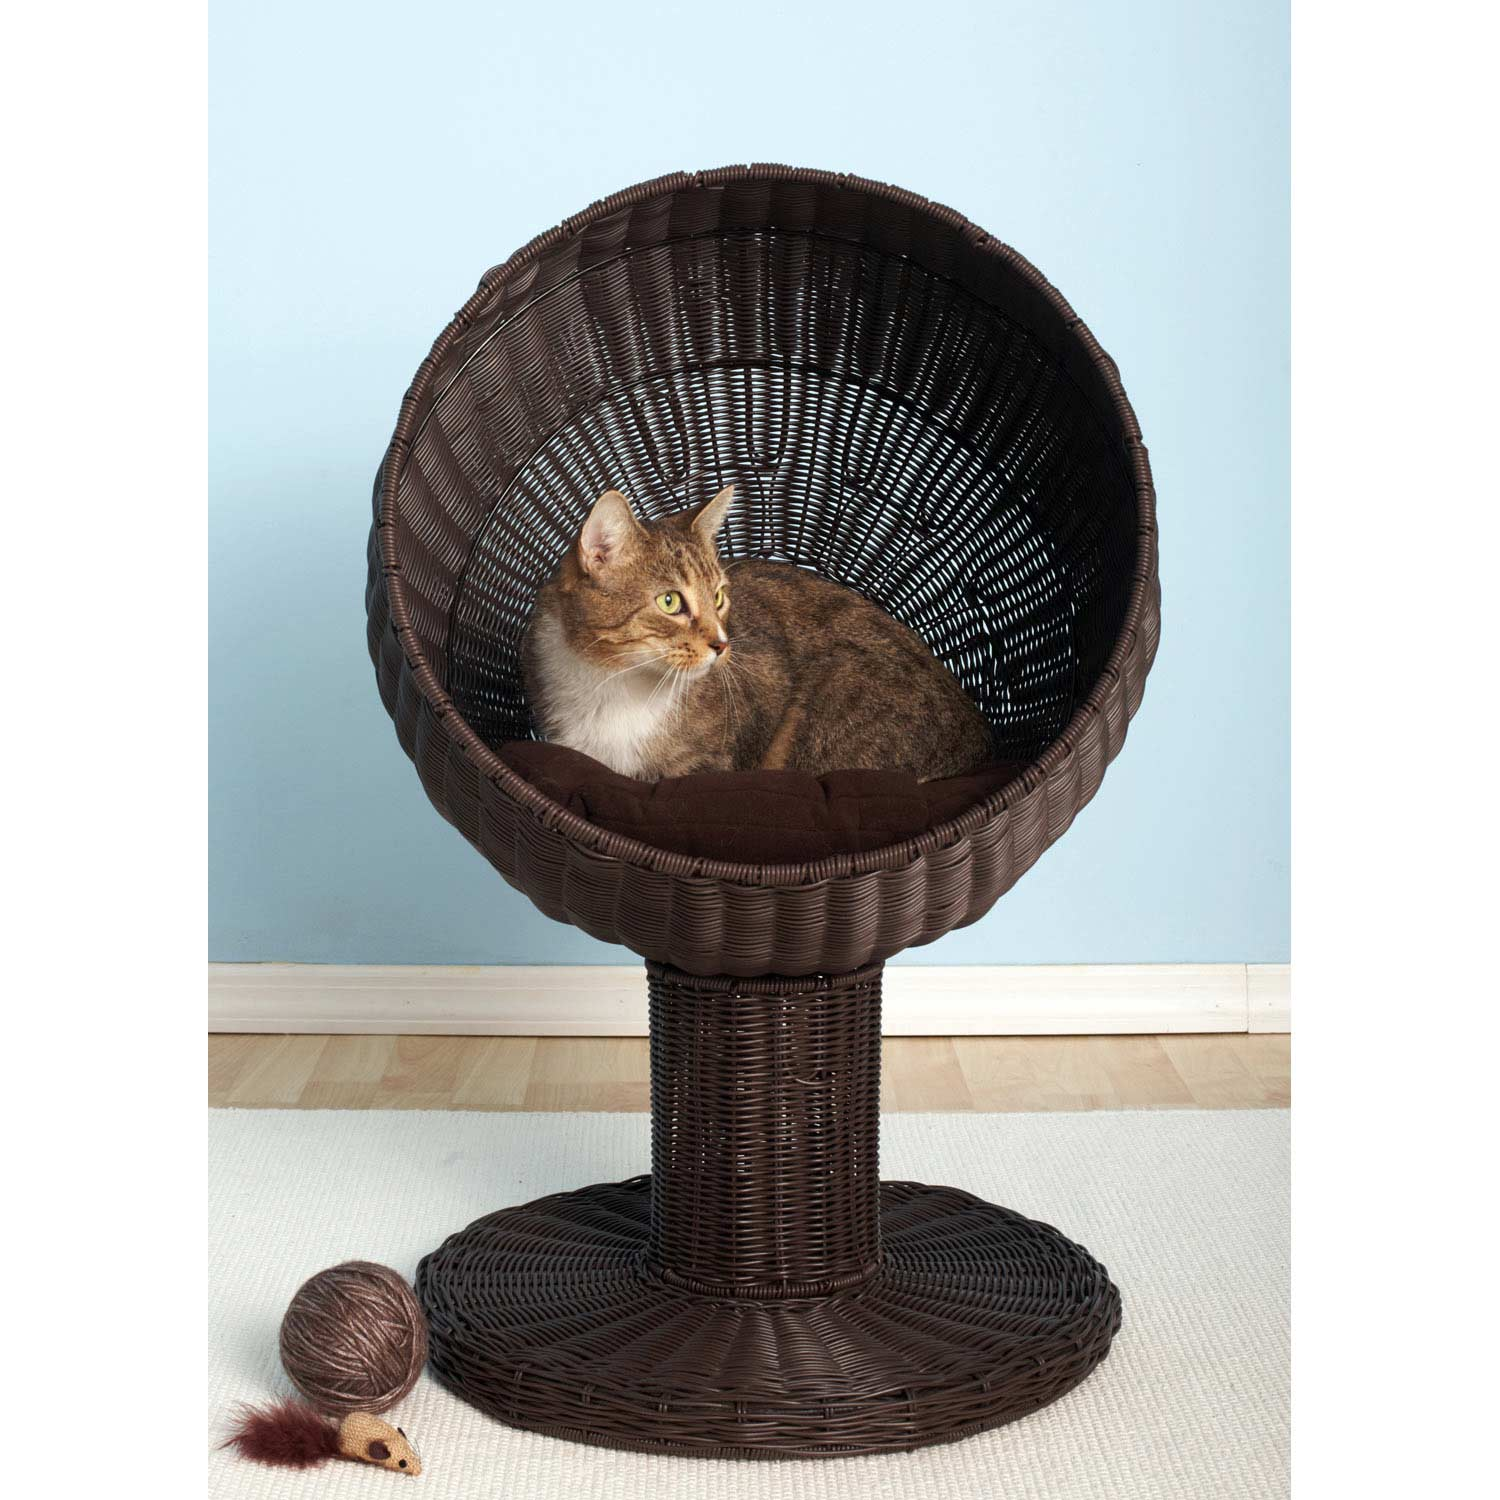 Premium Cat Furniture   Cat Condos, Cat Trees, Towers, Gyms, Cat Beds, Cat  Houses